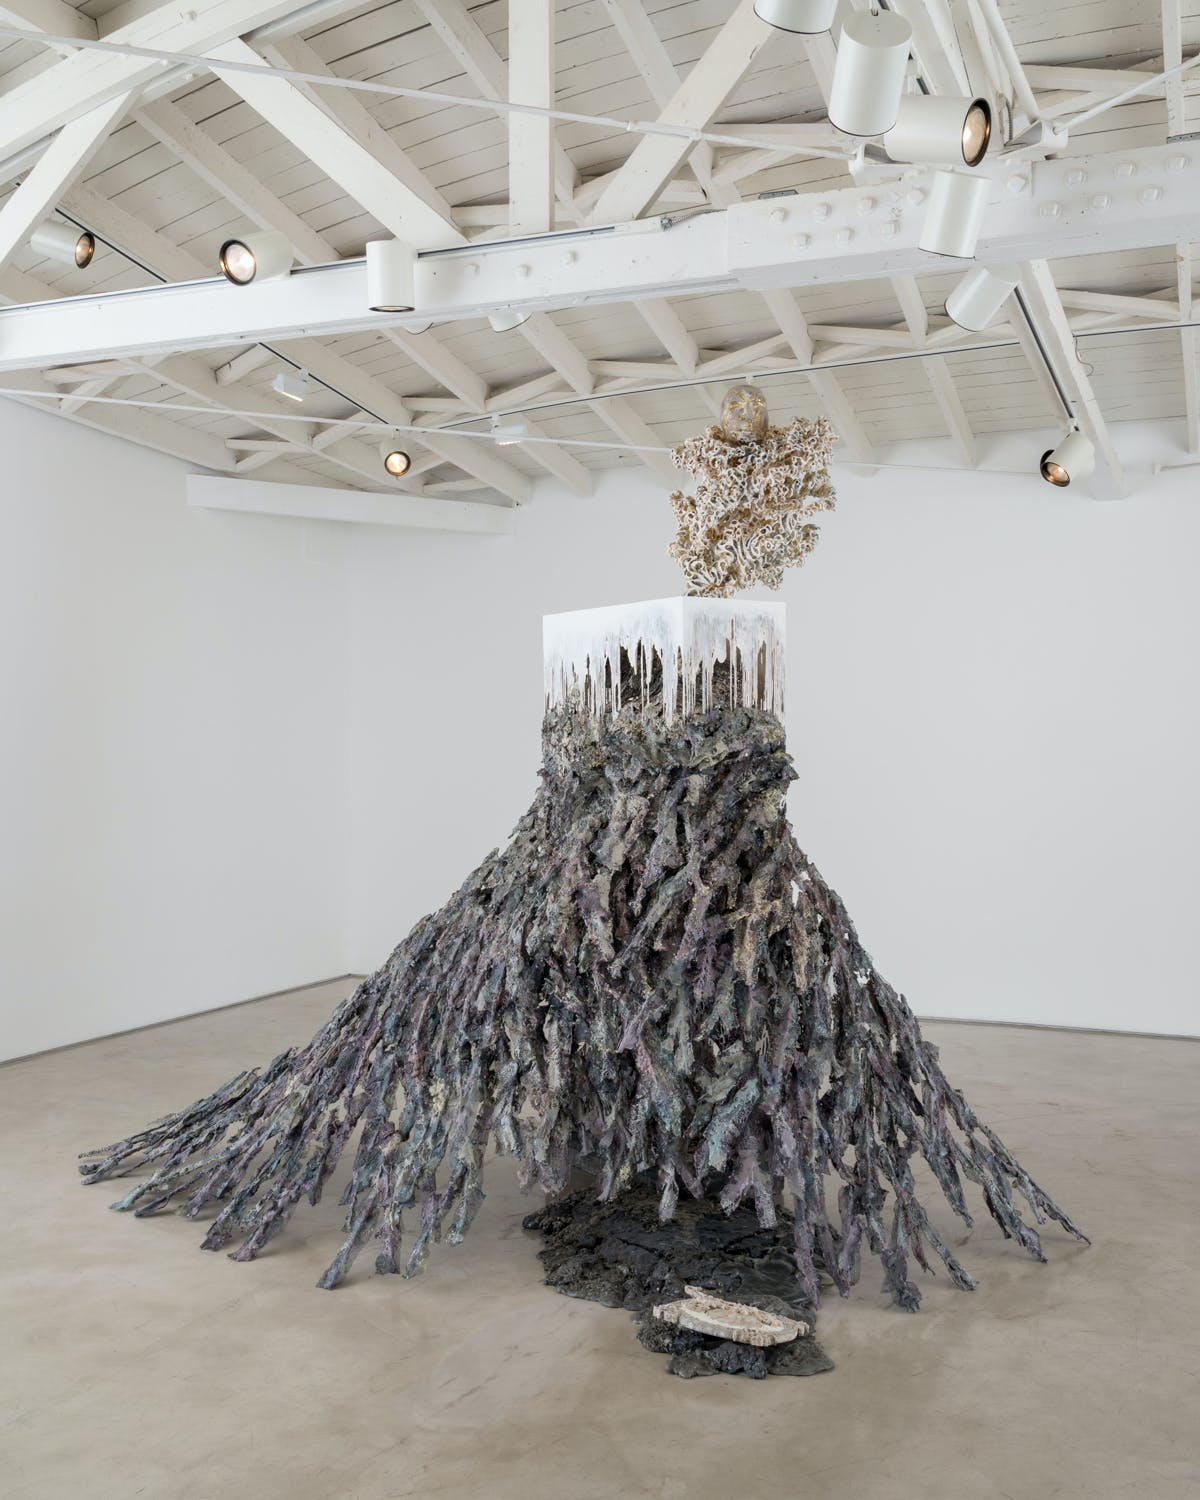 sculpture reminiscent of the base of a fir tree except purple gray and topped with dripping cube coral skeleton and a face